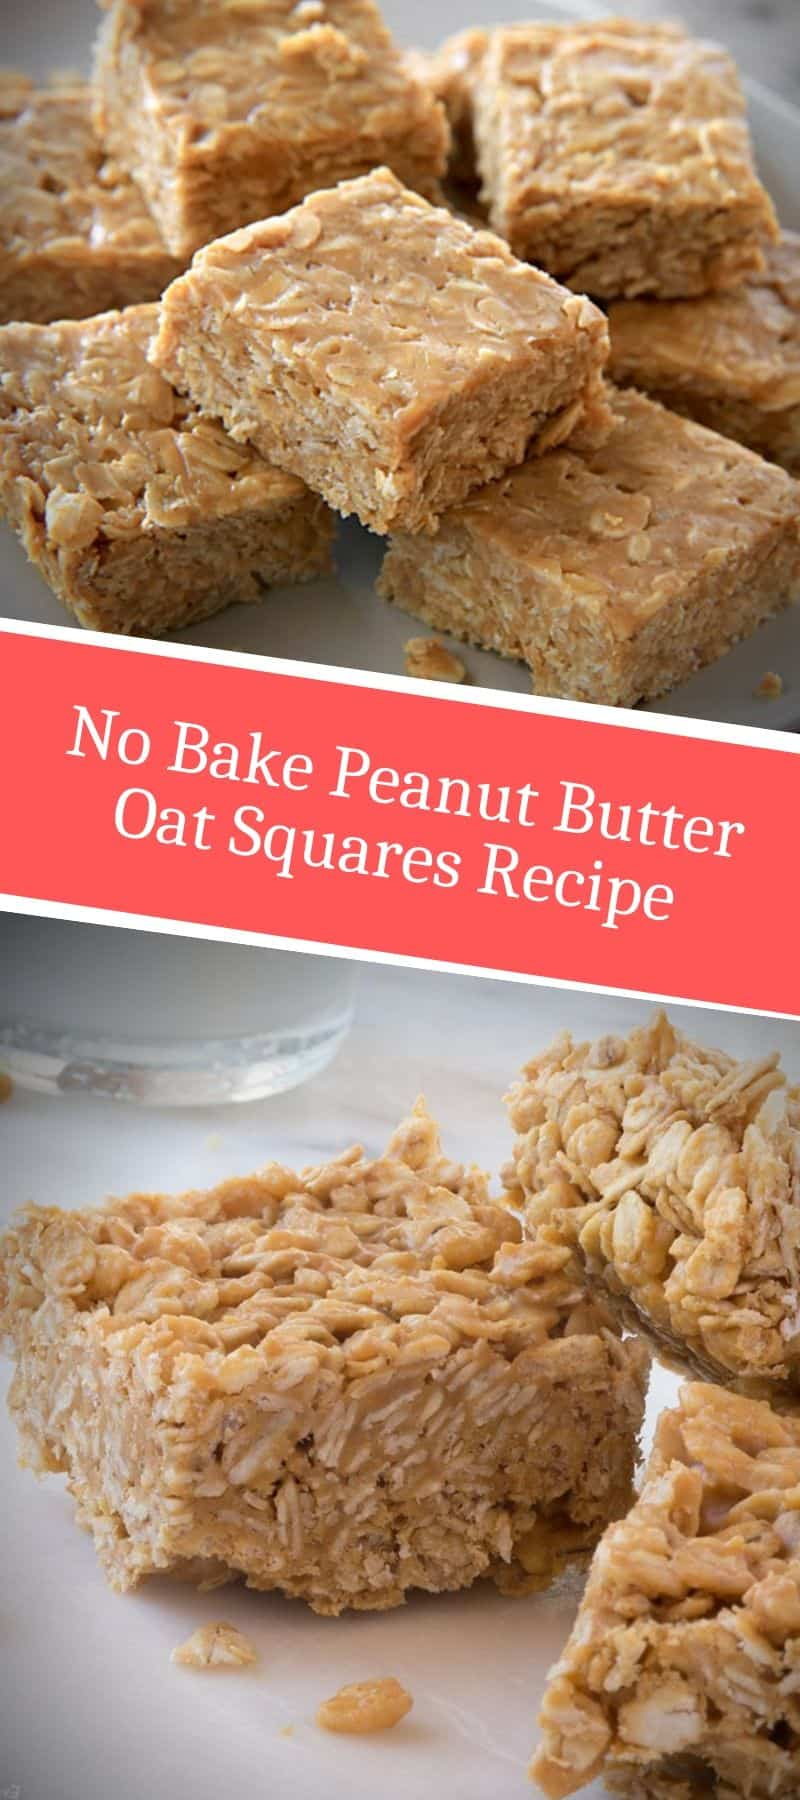 No Bake Peanut Butter Oat Squares Recipe 3